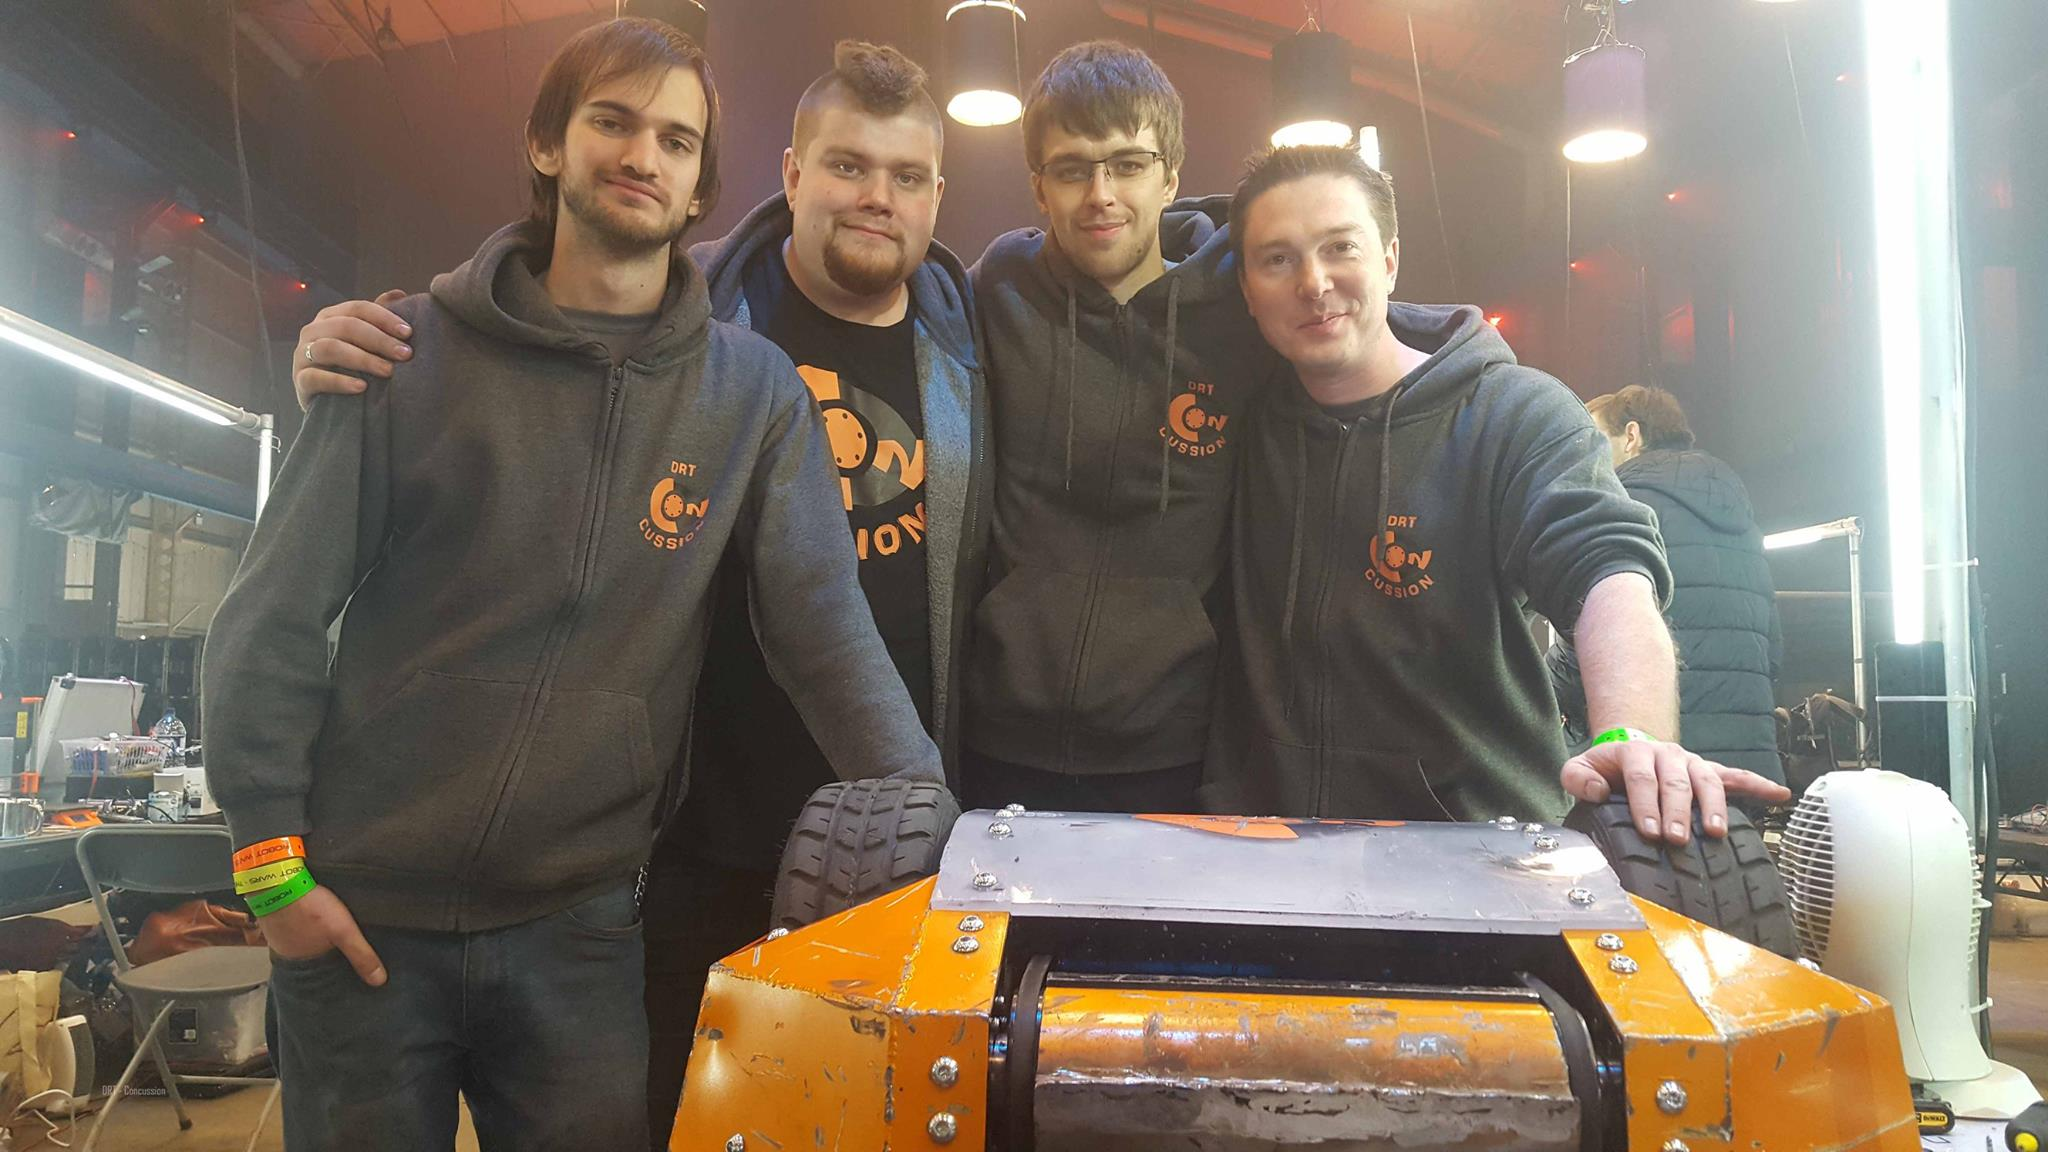 BATTLE: Dorset Robot Wars team